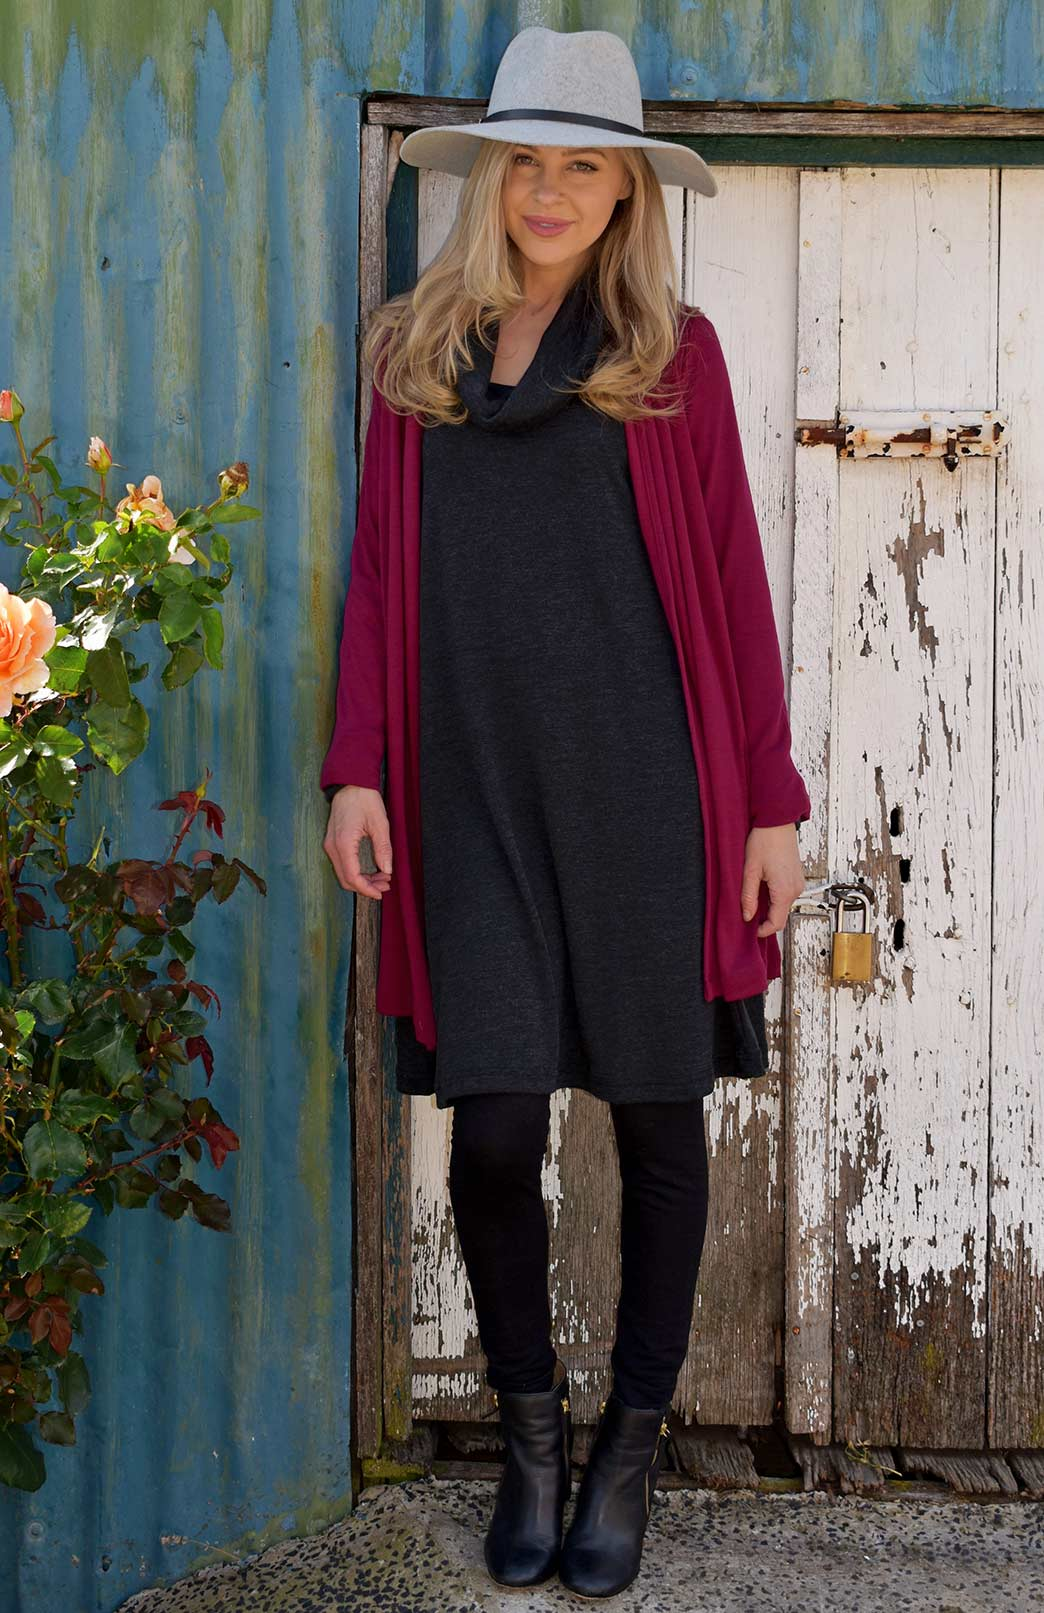 99cfafafe420 Winter Dresses and Wool Knits for Women | Smitten Merino Tasmania ...